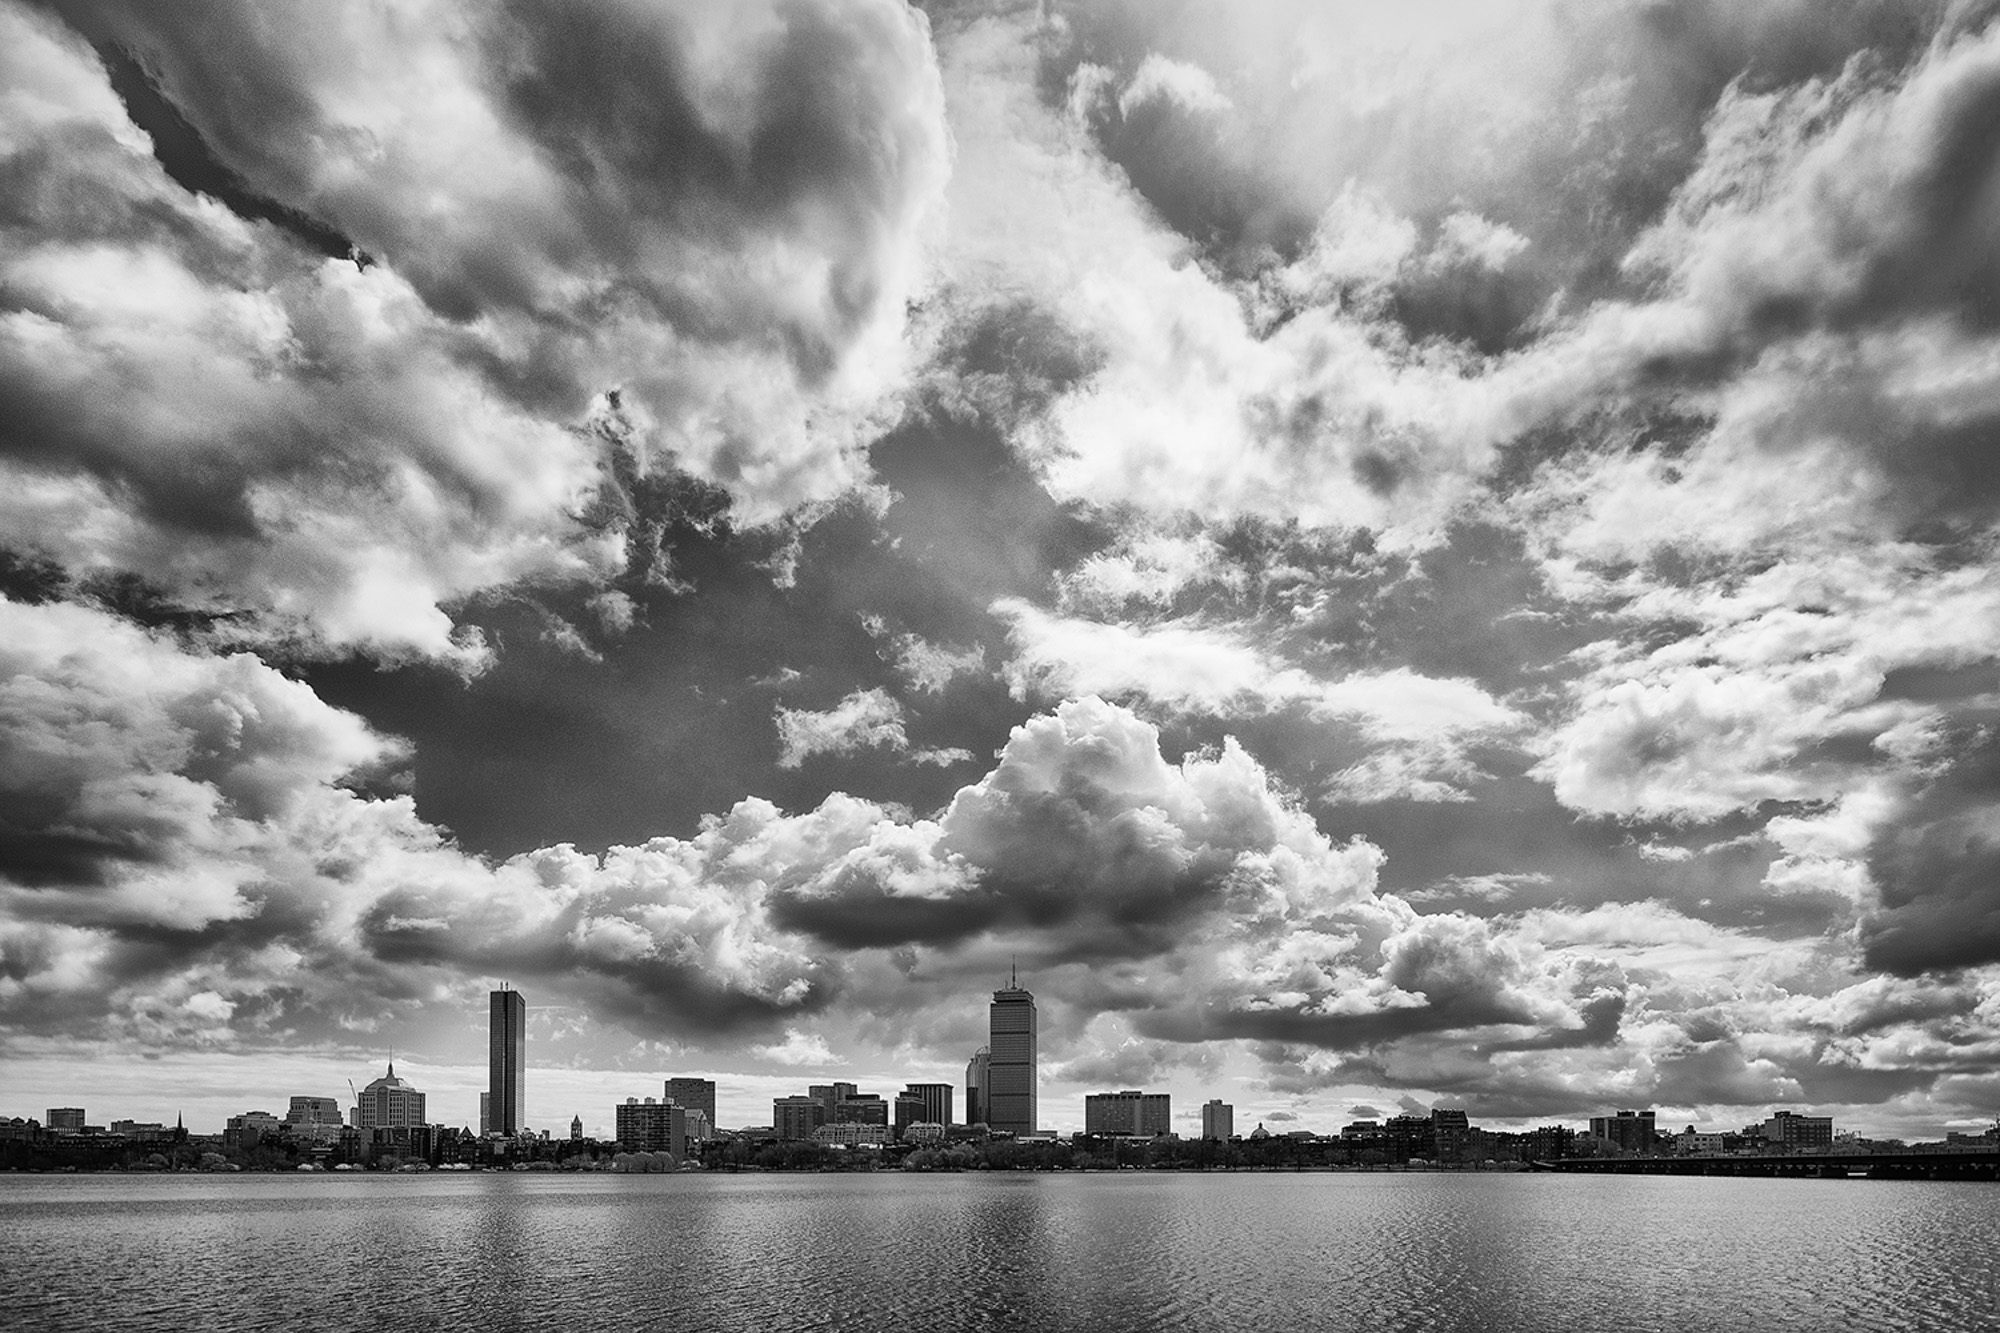 Clouds over Charles River